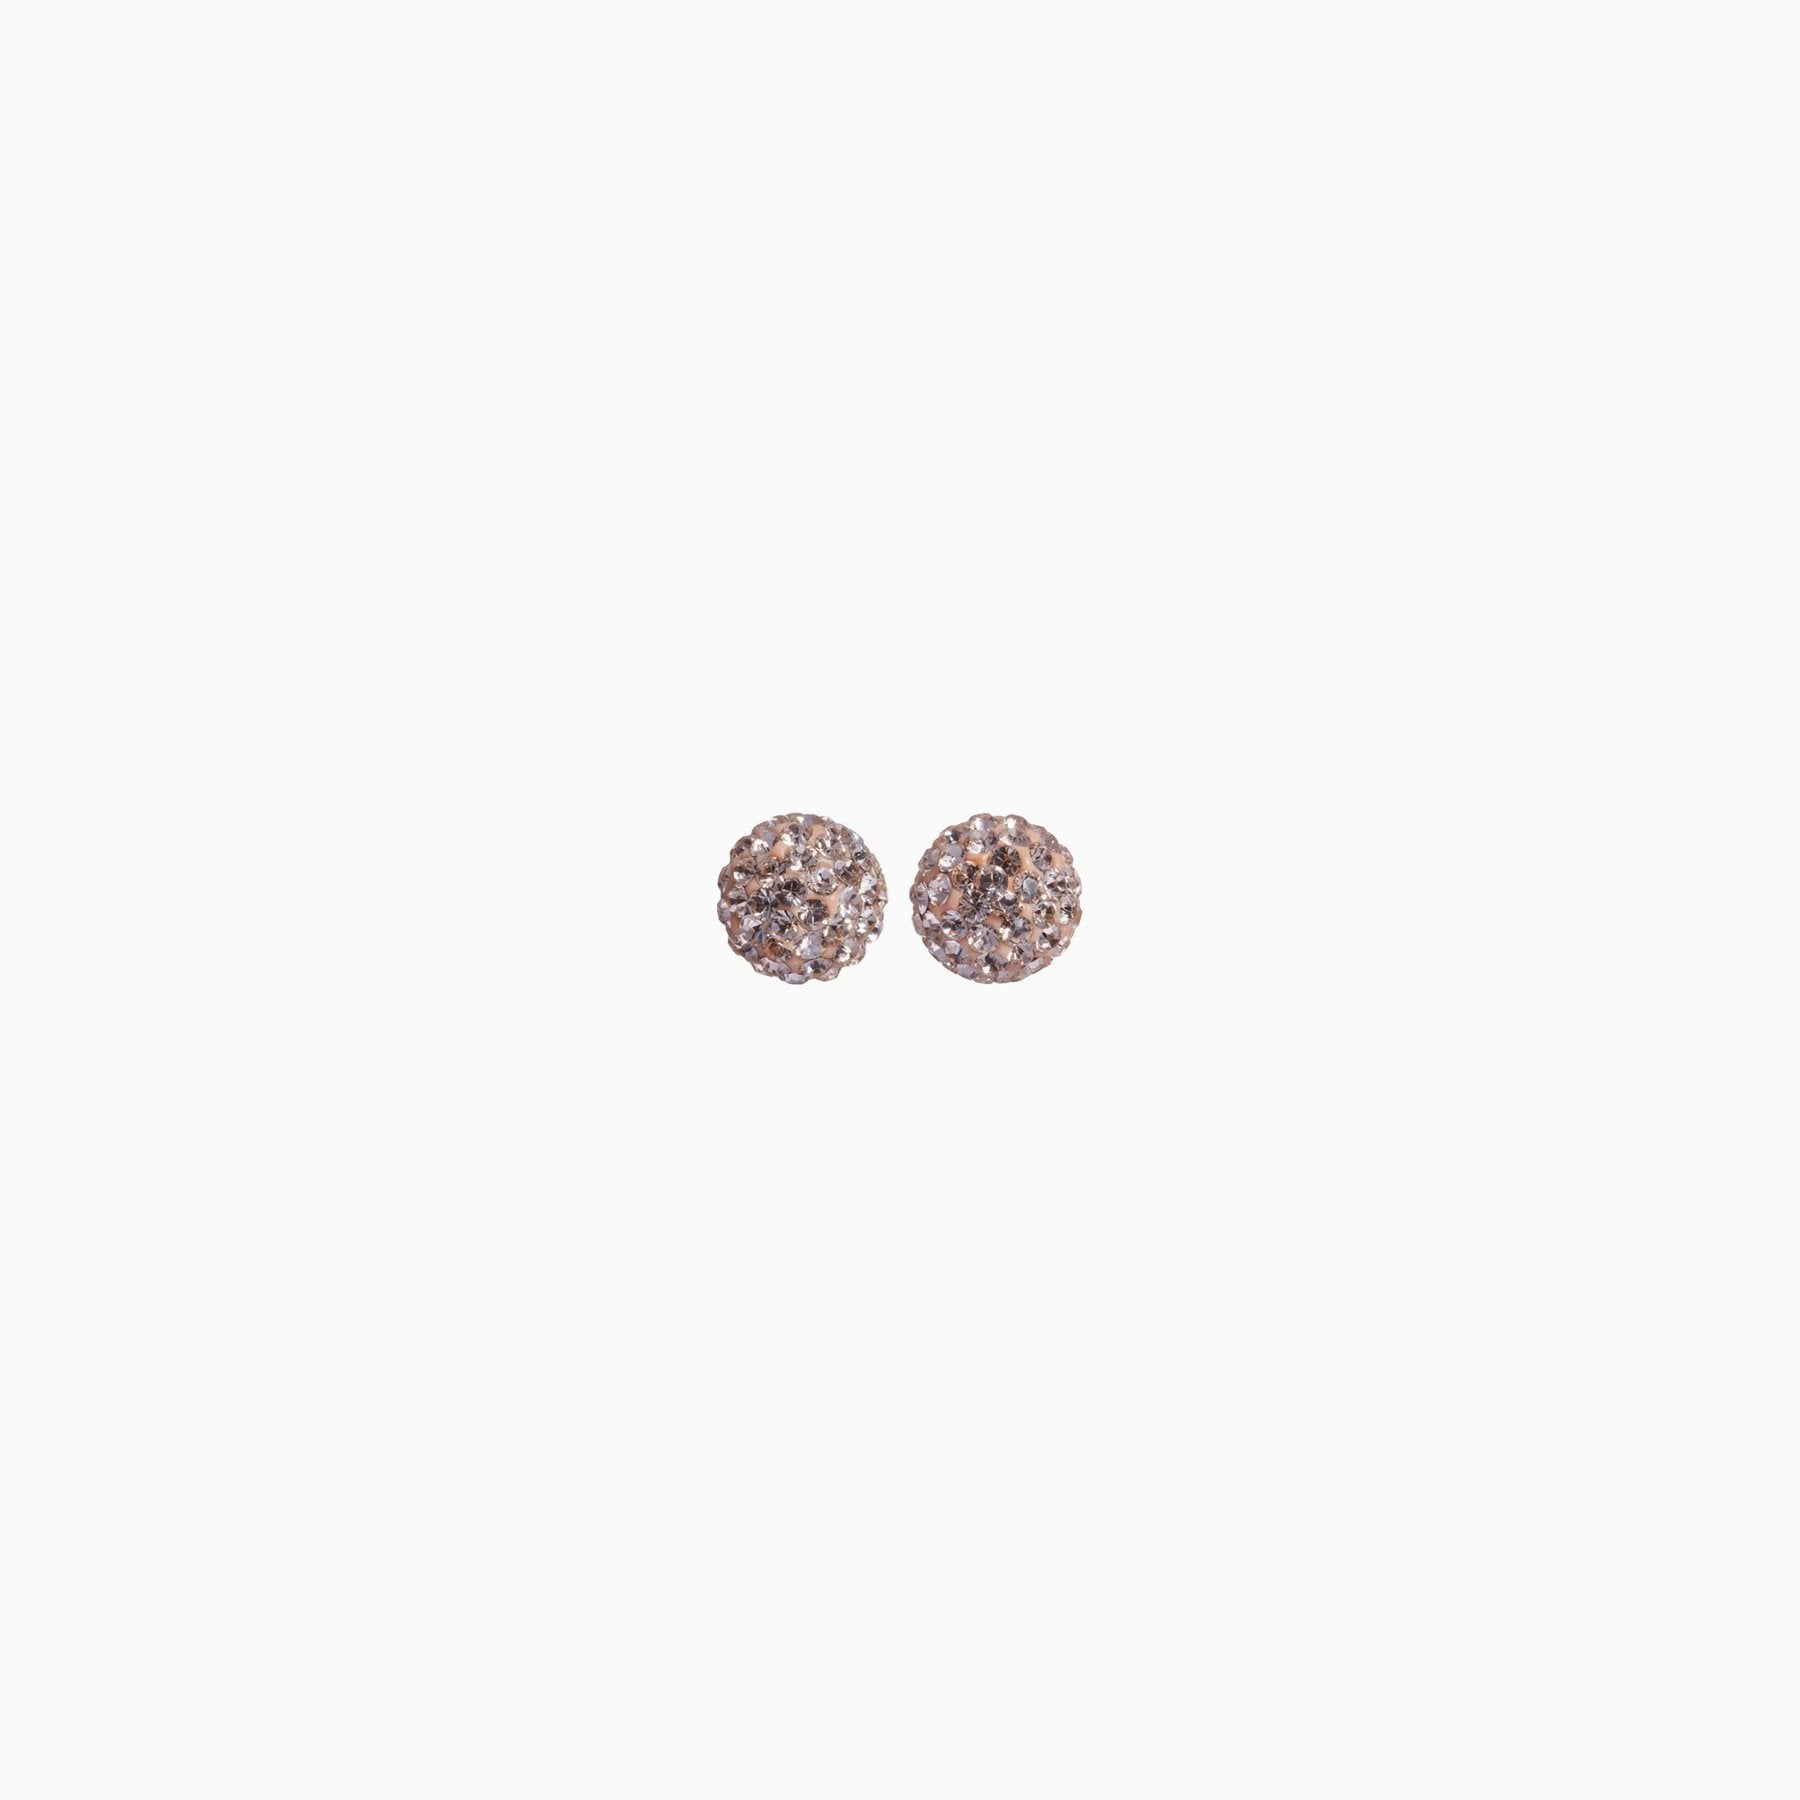 H&B Sparkle Ball™ Stud Earrings - 6mm Rose Gold